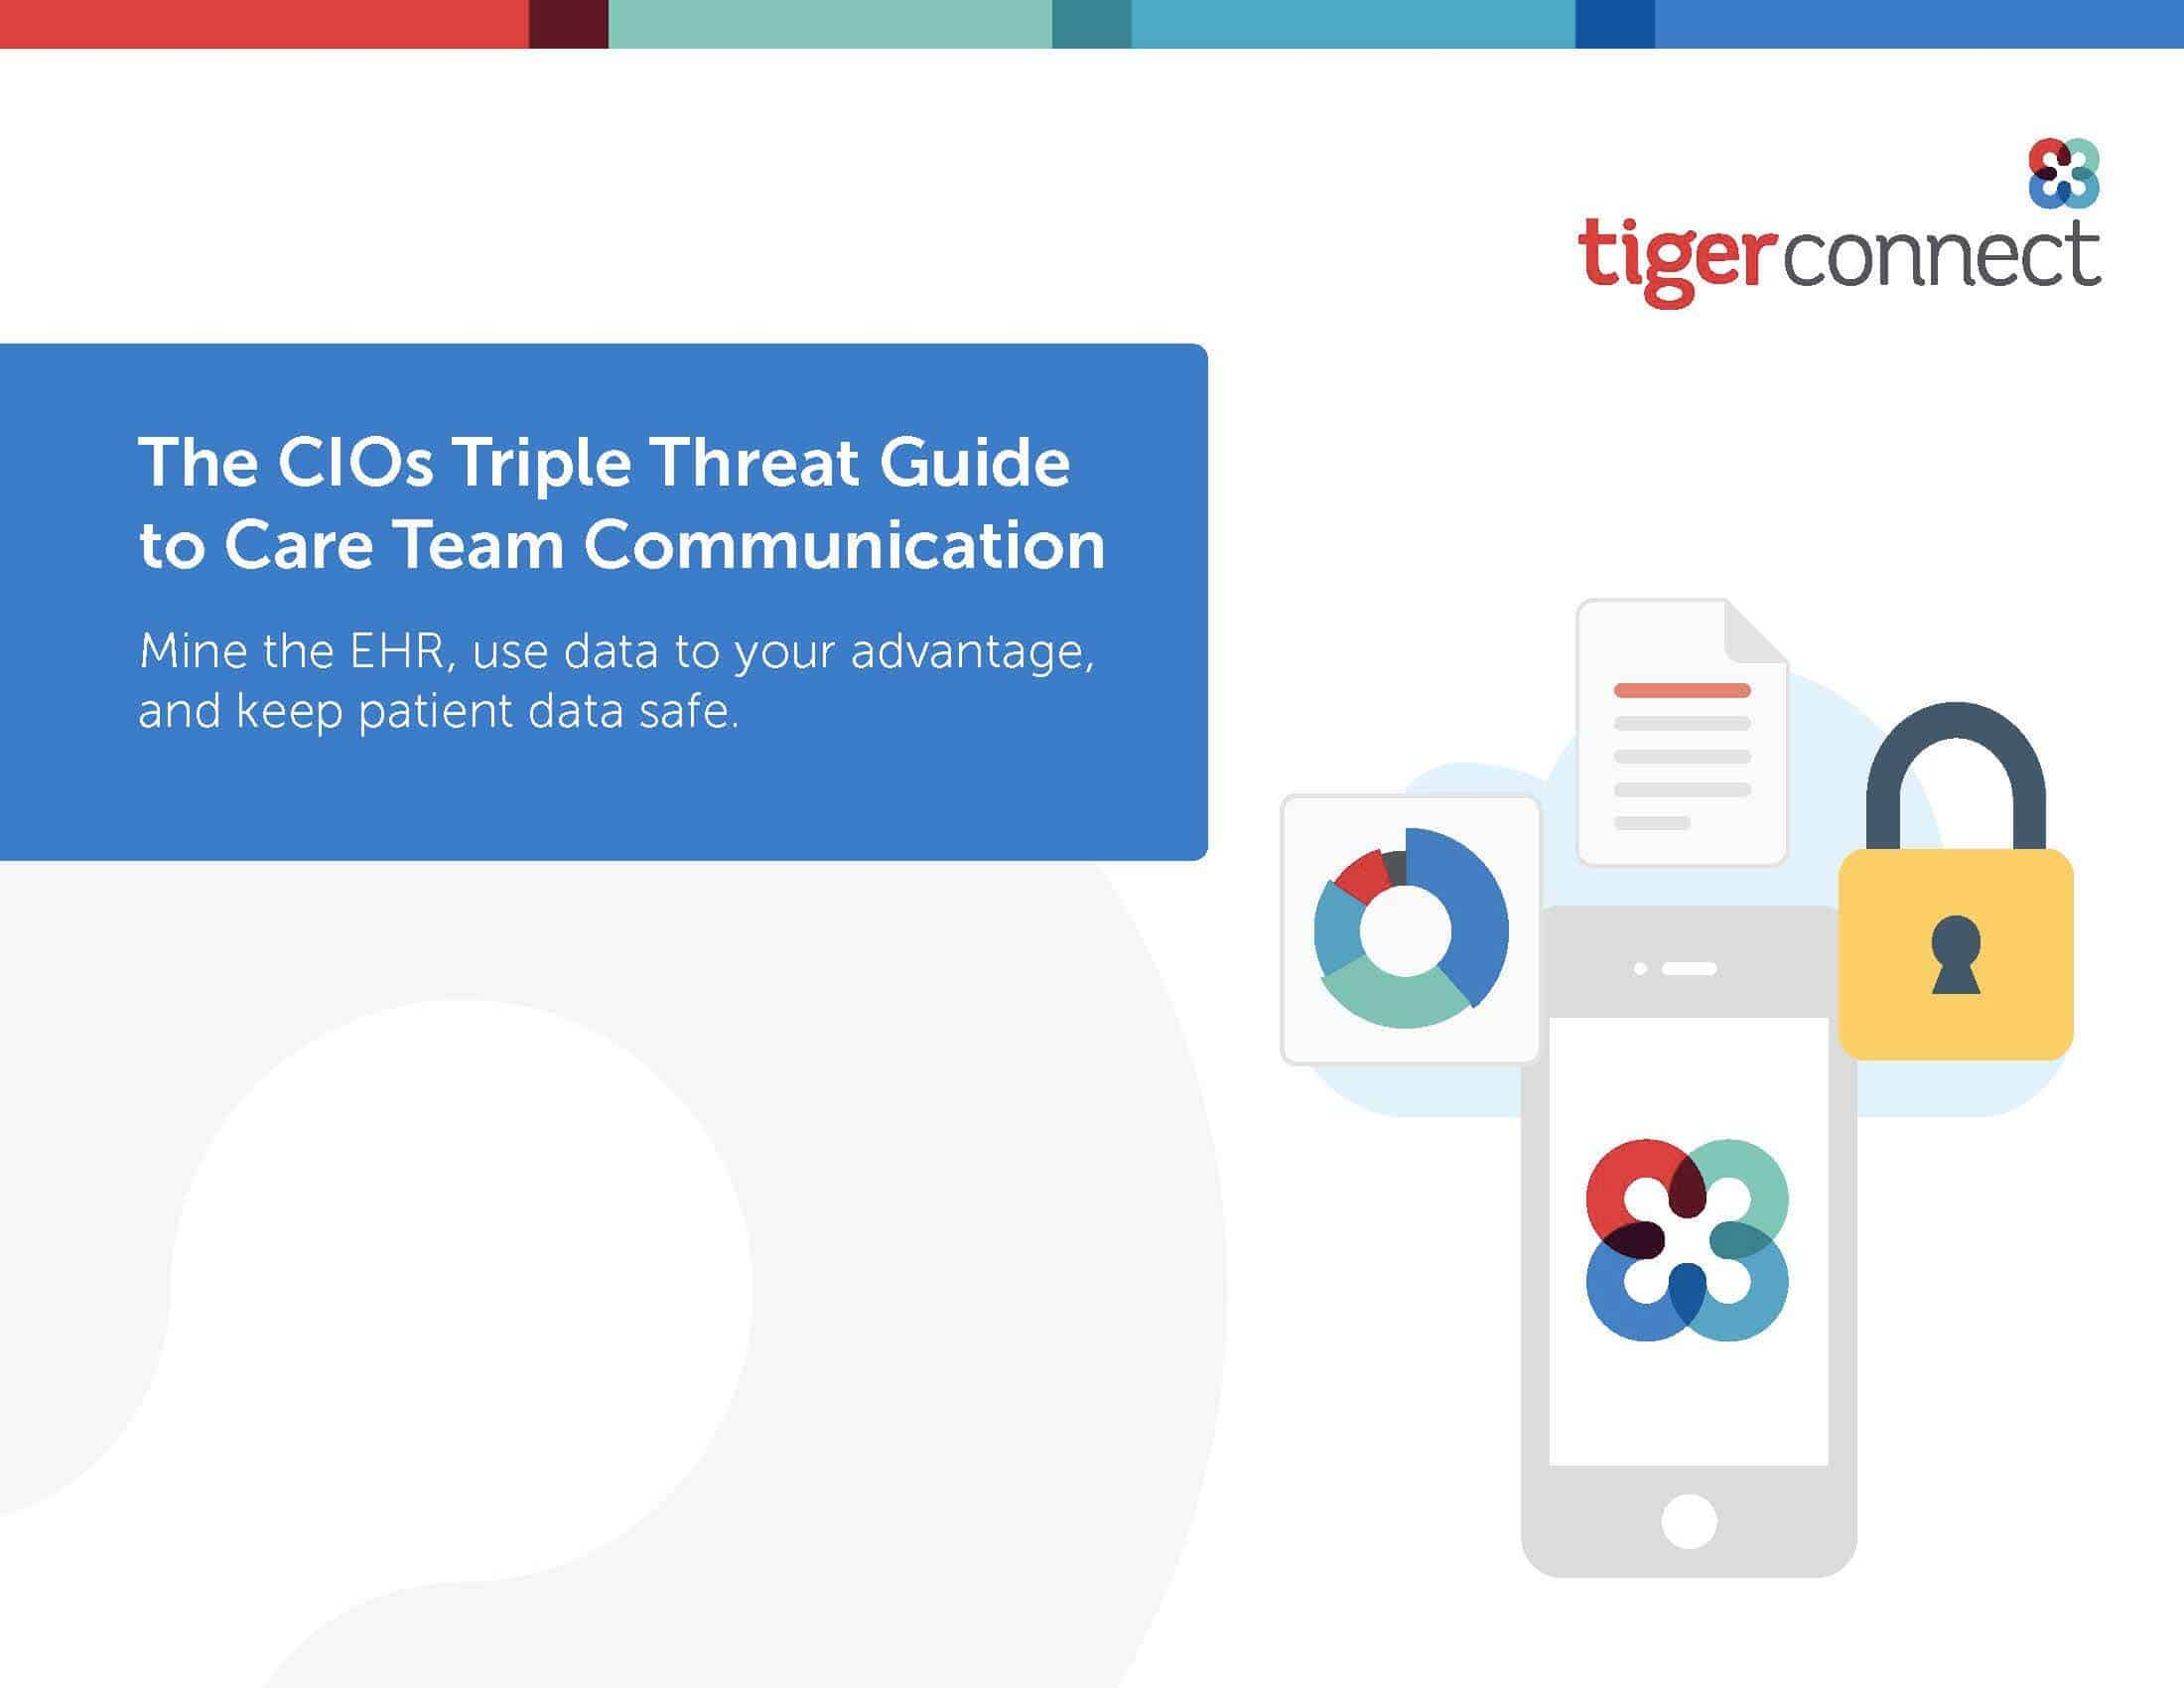 The CIOs Triple Threat Guide to Care Team Communication Preview